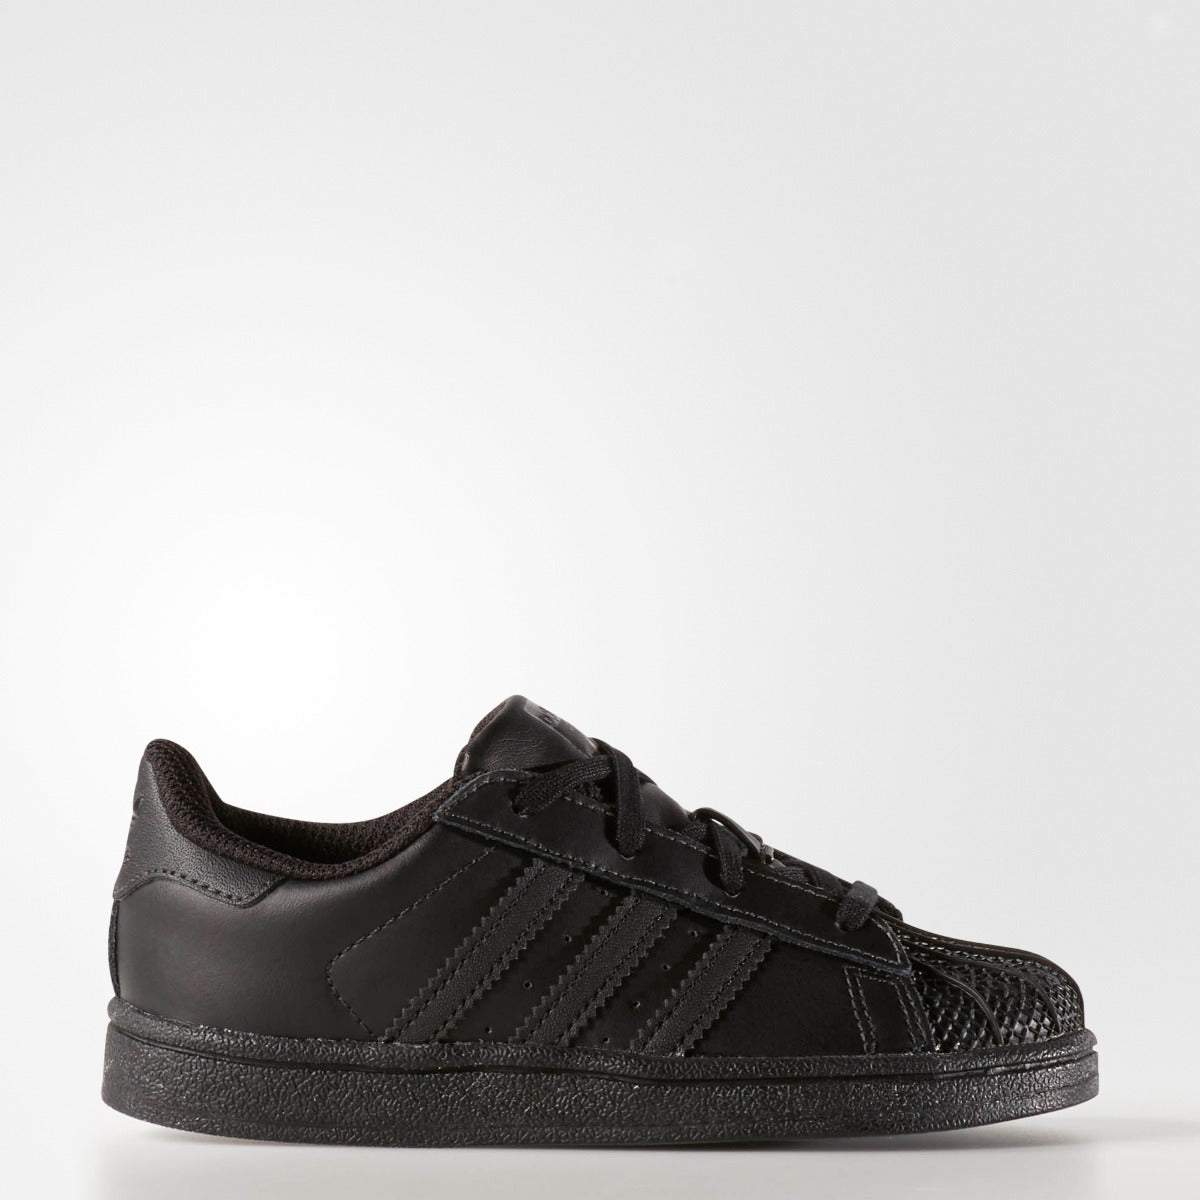 low cost ebe1a 8d7a0 Toddler s Adidas Originals Superstar Foundation I Black